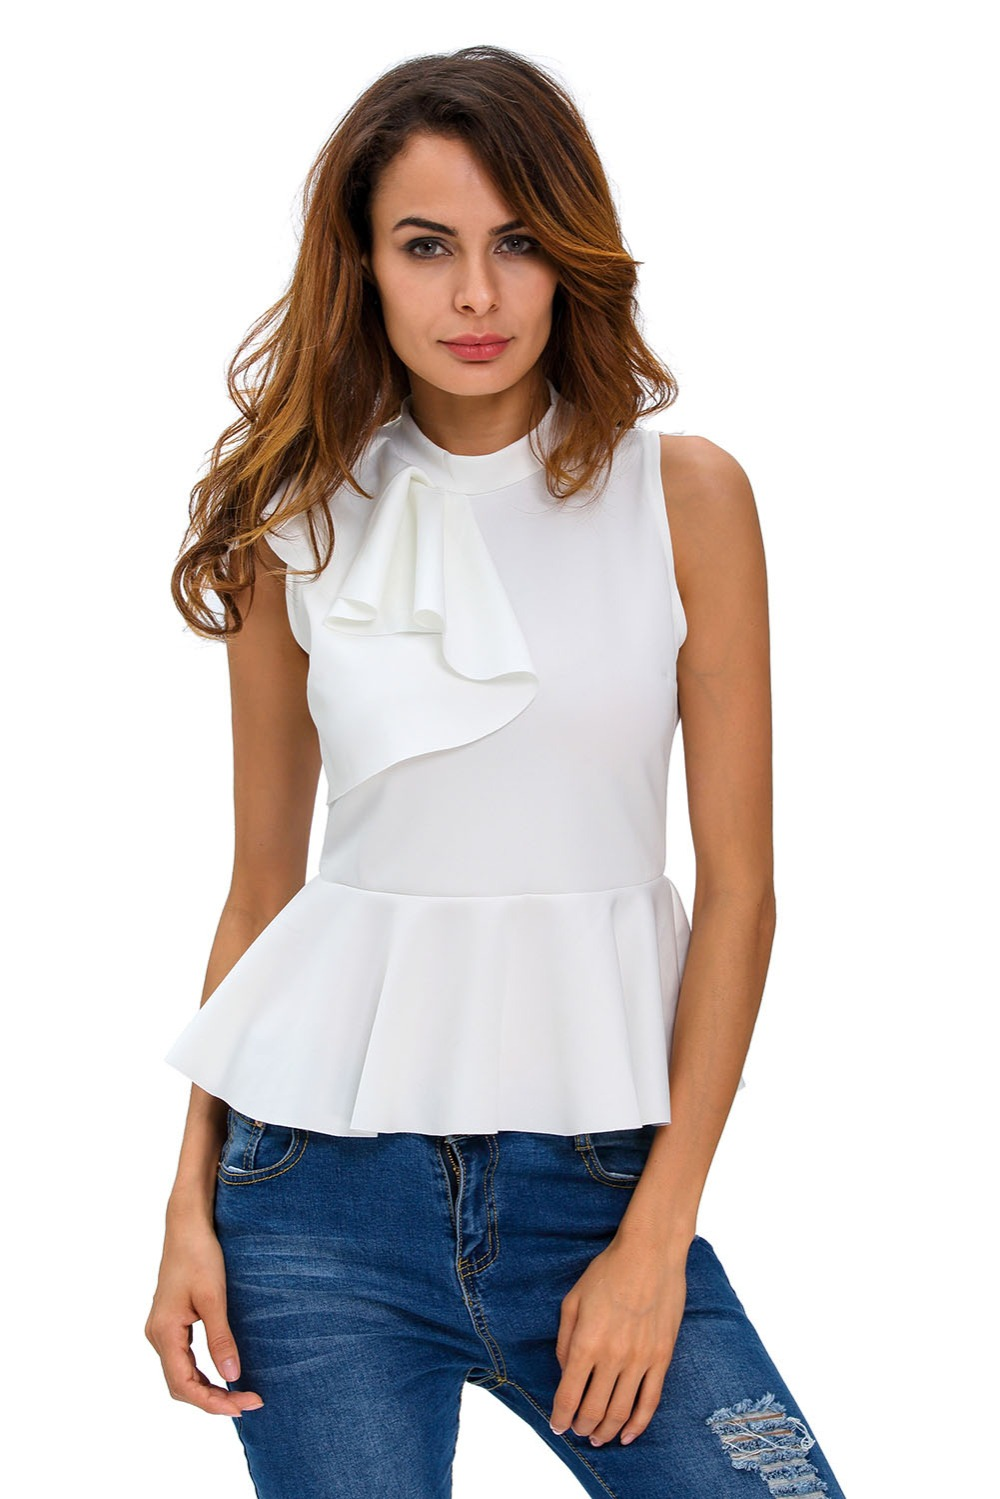 Aletterhin Women Asymmetric Ruffles Peplum Blouse Lady Zippers Blusas High Neck Sleeveless Office Lady Shirt blusas 2017 Summer